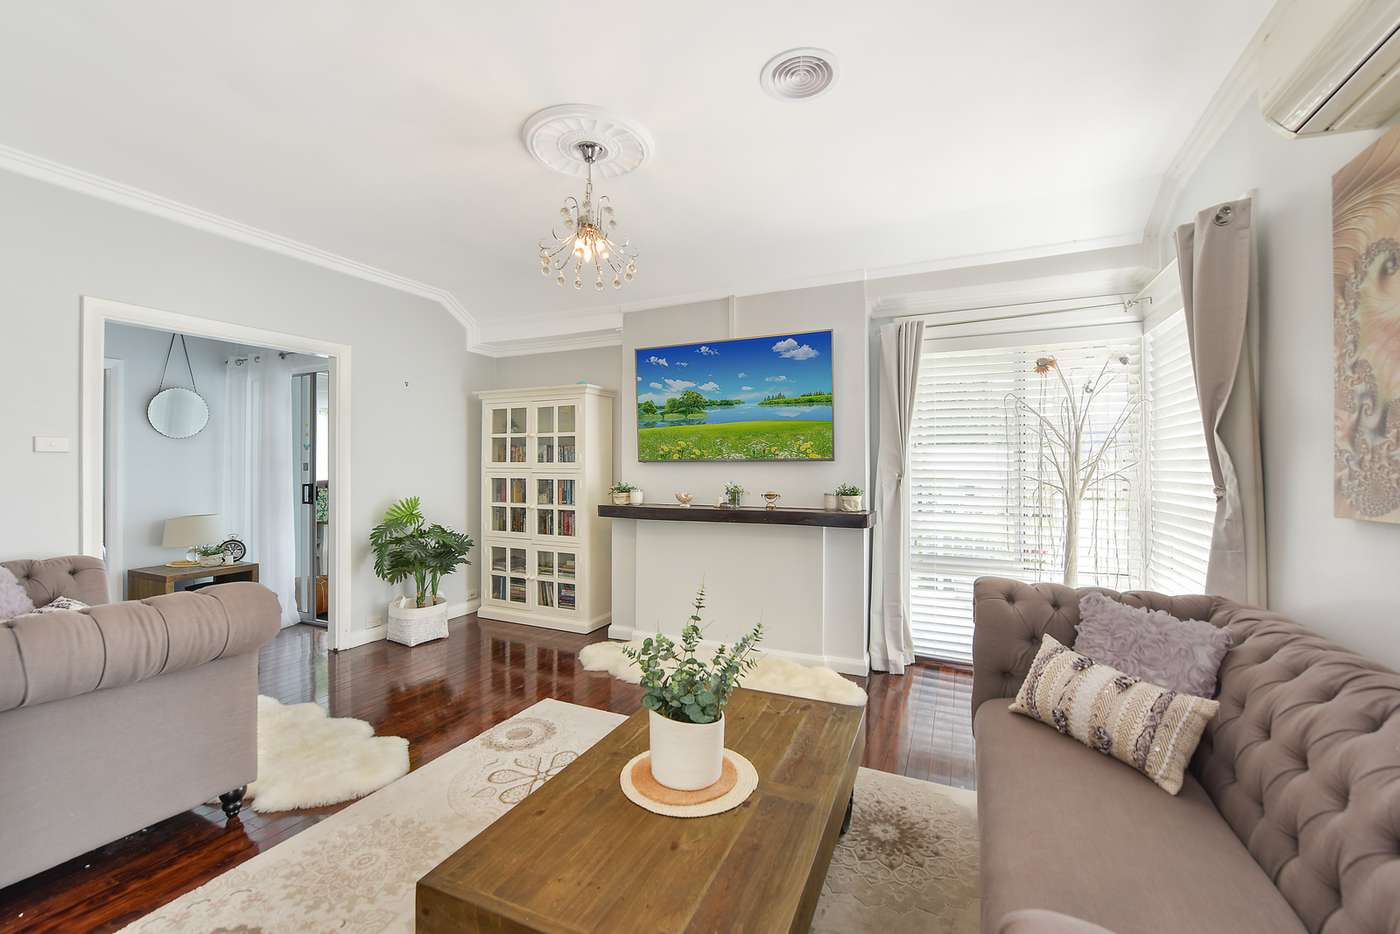 Fifth view of Homely house listing, 4 Amiens Street, Littleton NSW 2790